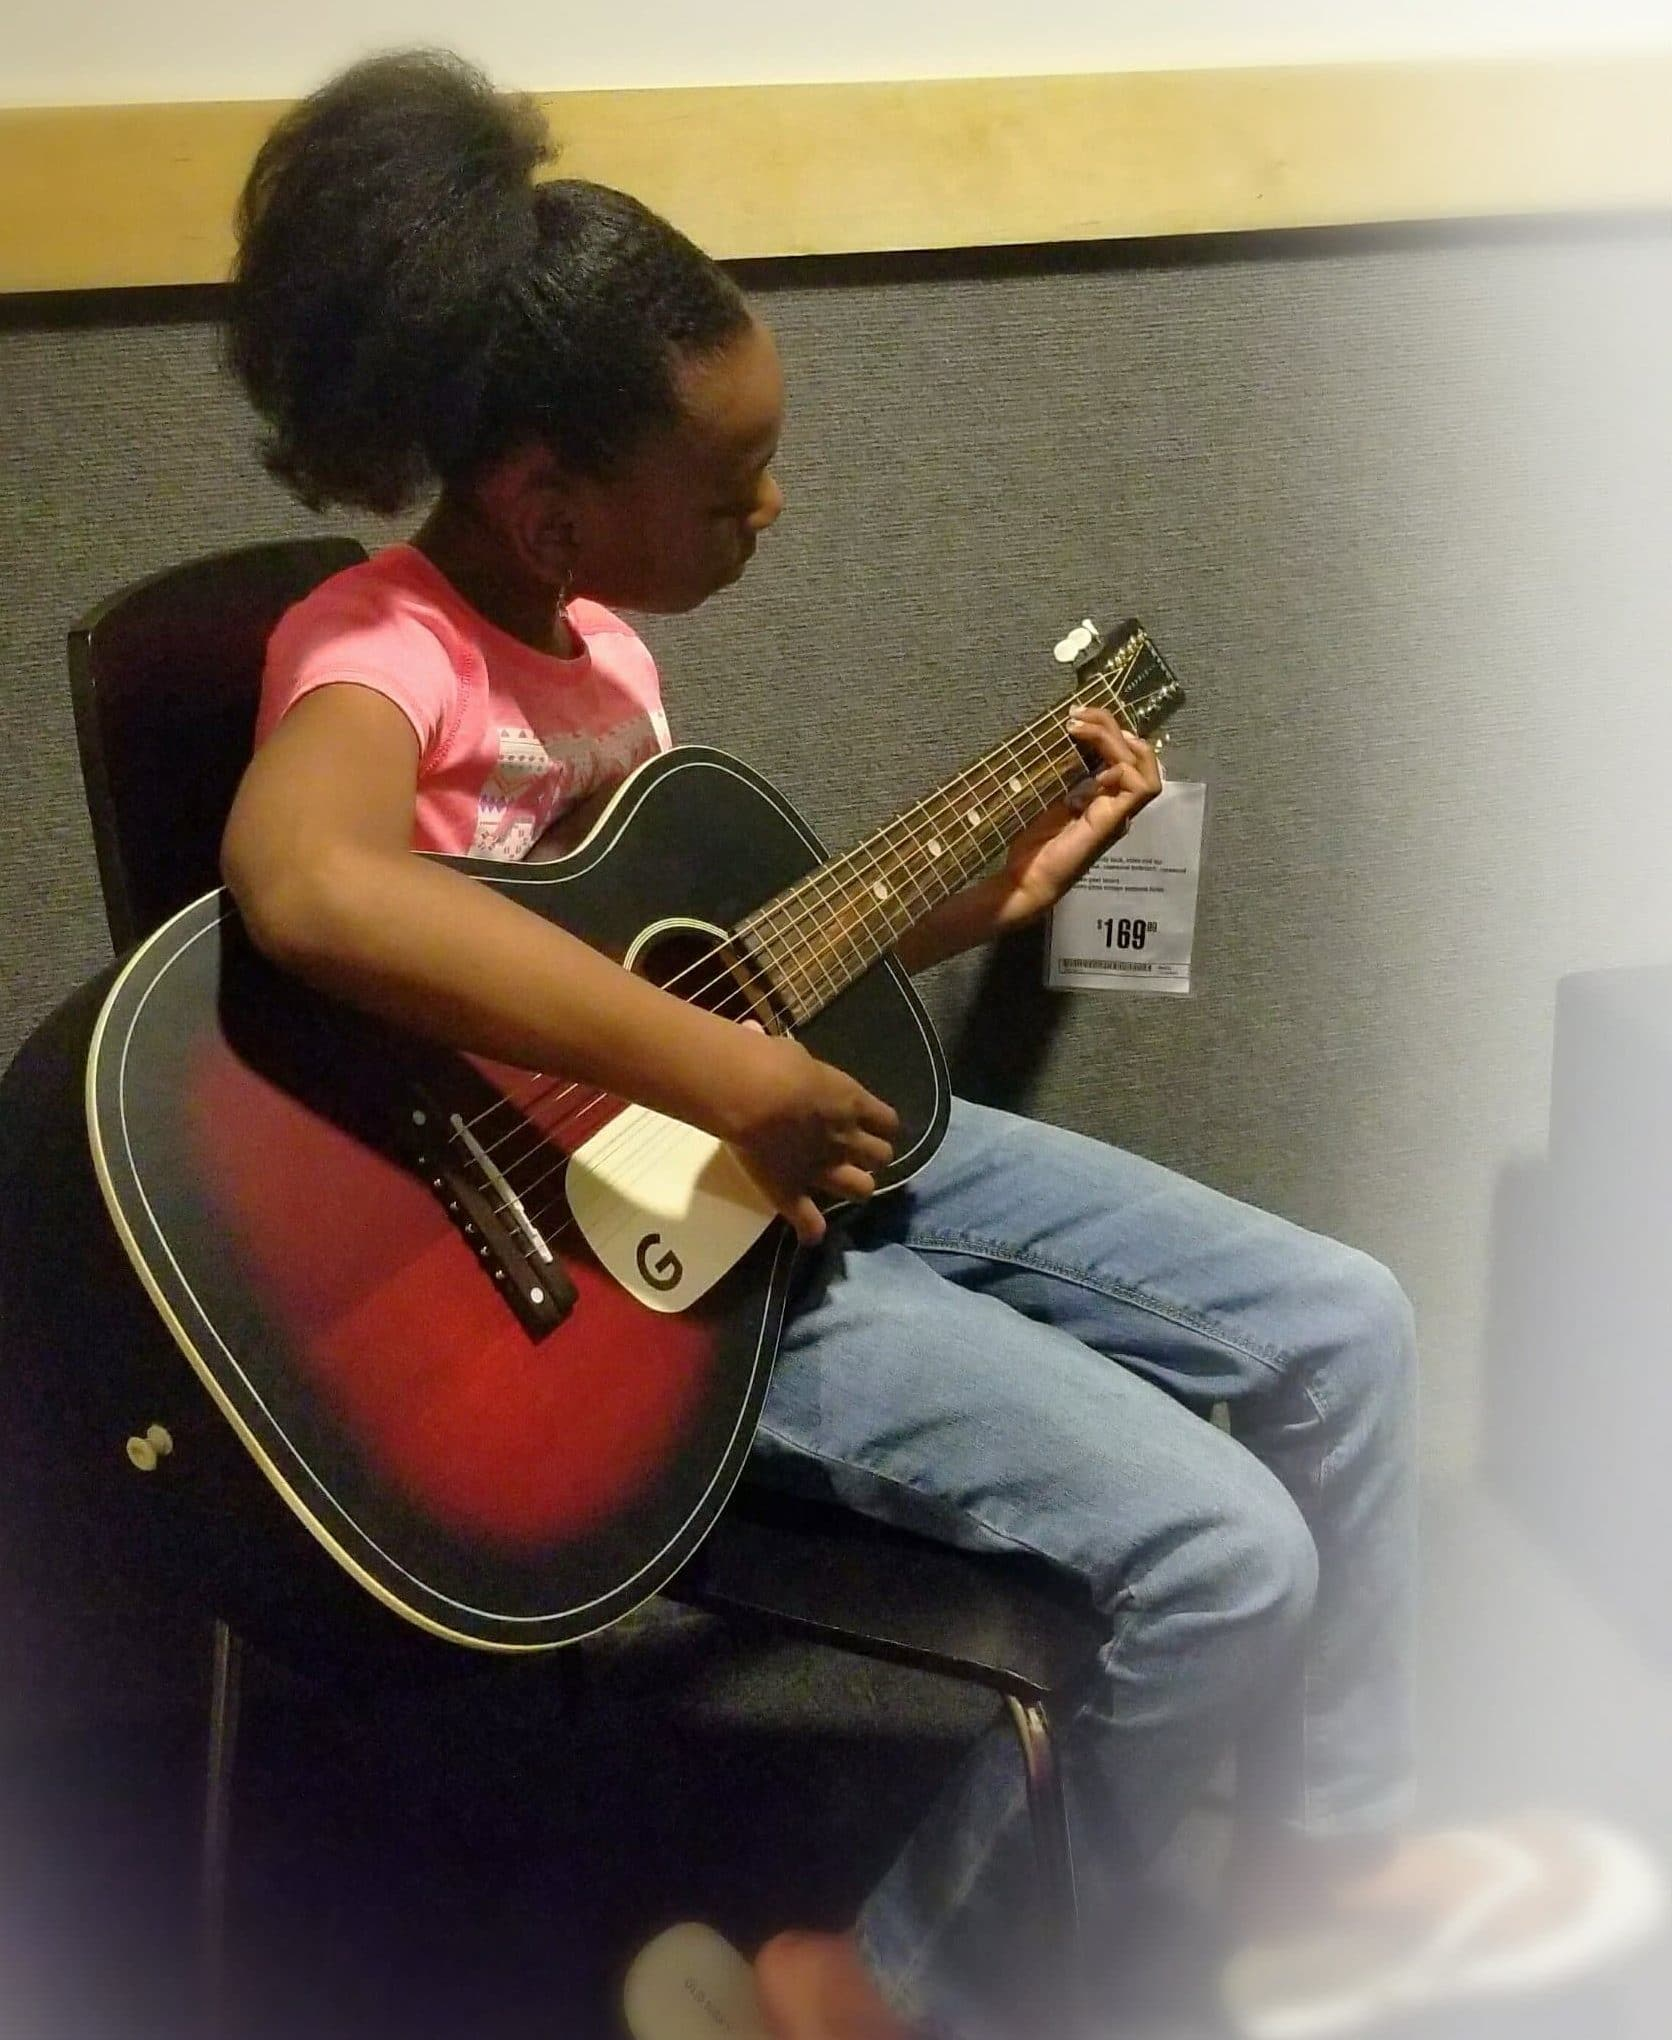 guitar lessons at guitar center